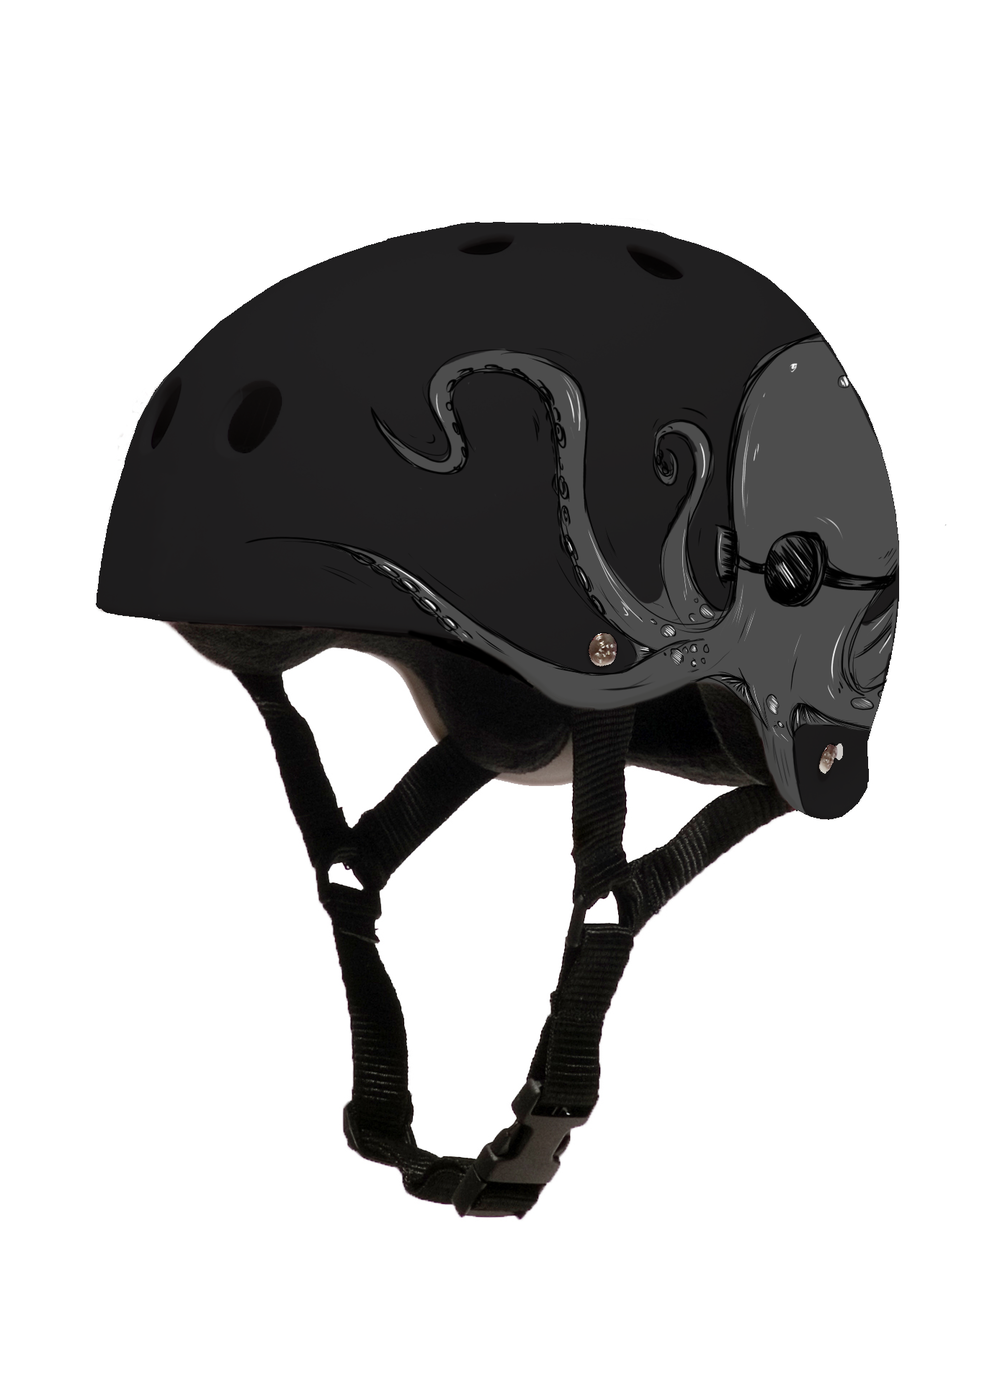 Jovoto octo helm design or die triple 8 for Helm design